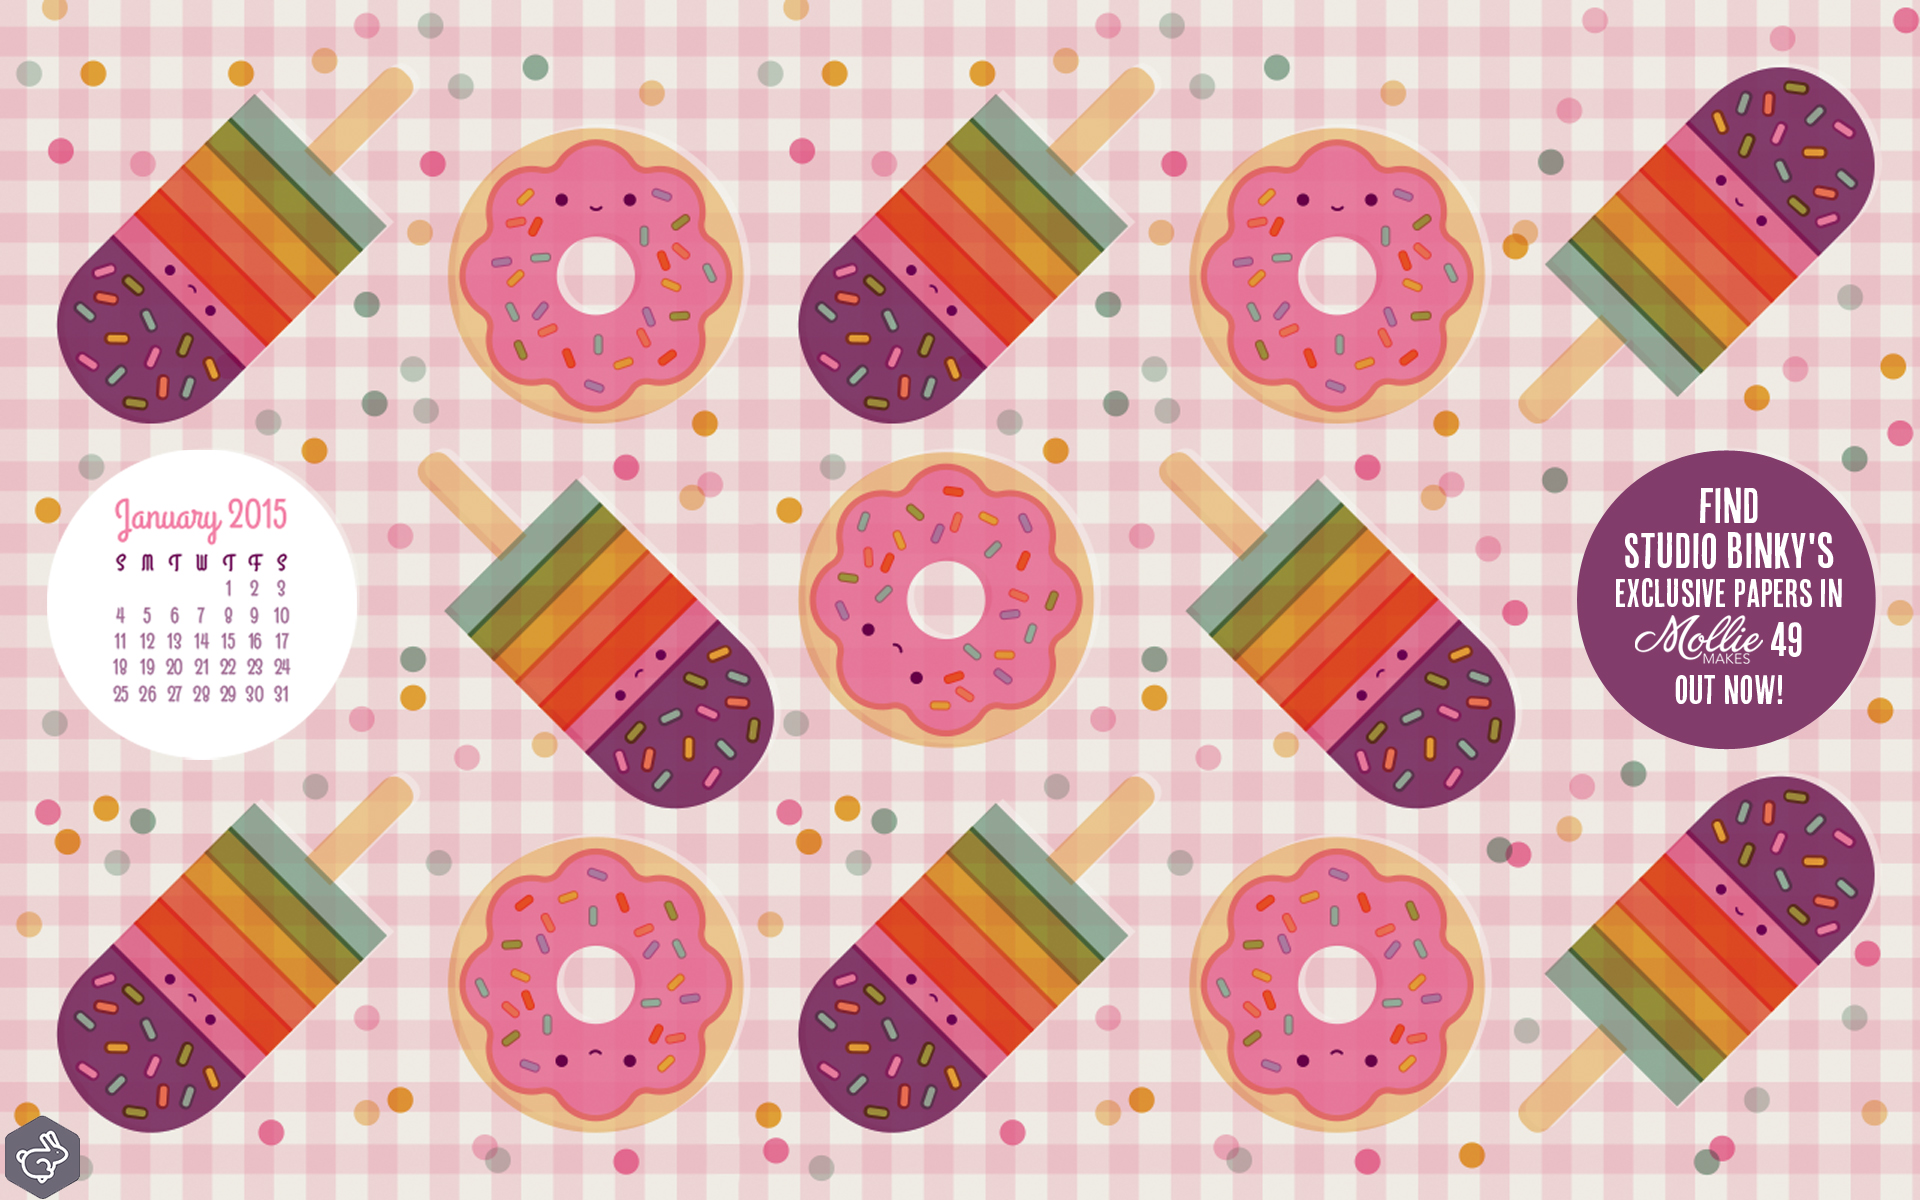 Download the sweet treats desktop calendar by Studio Binky to match 1920x1200